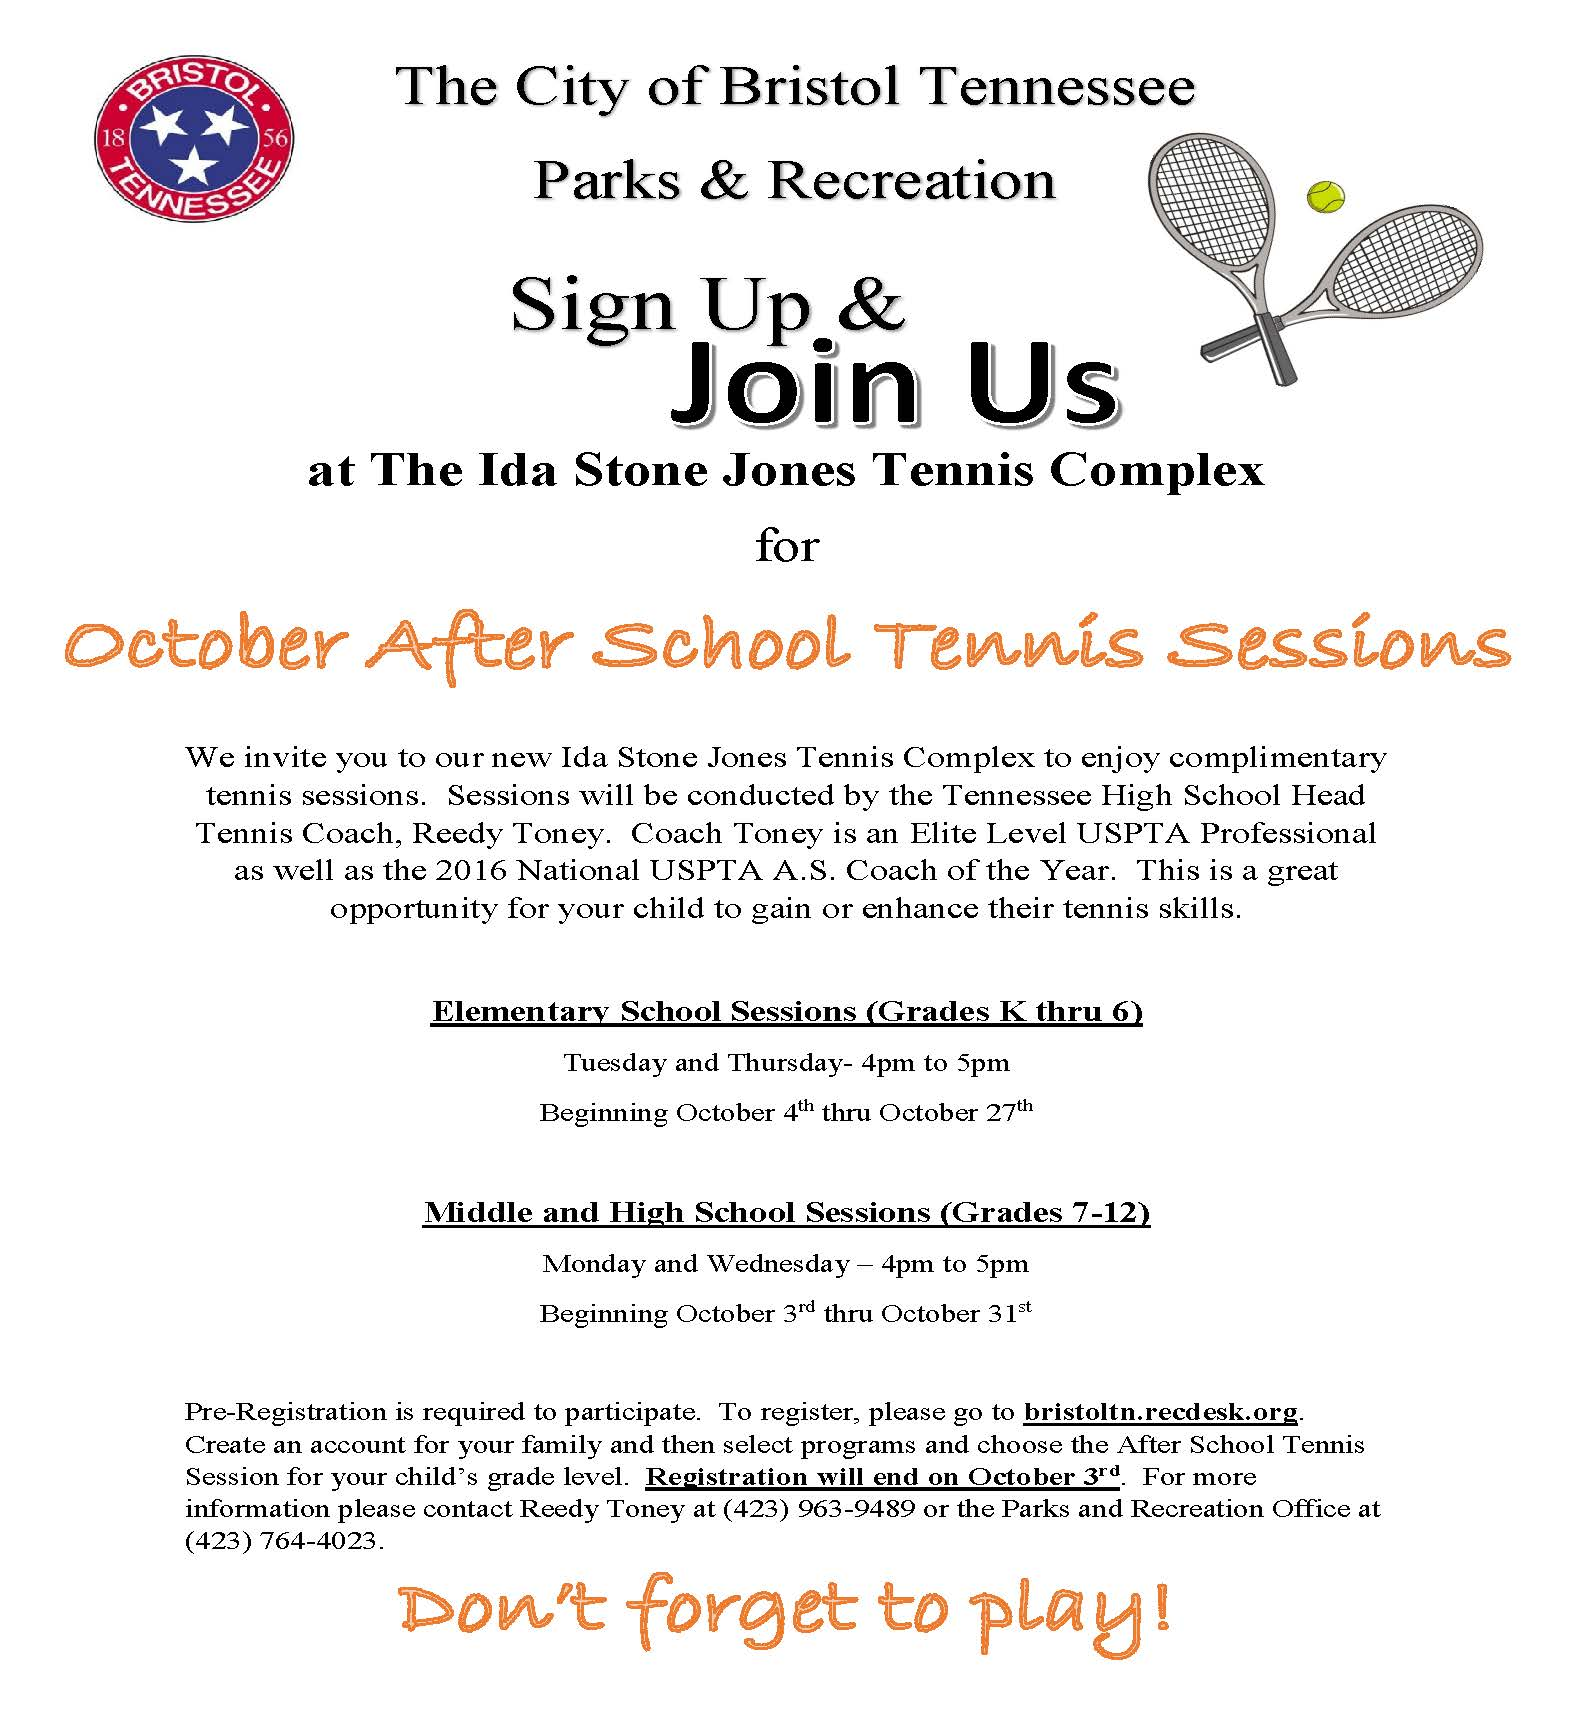 October After School Tennis Sessions